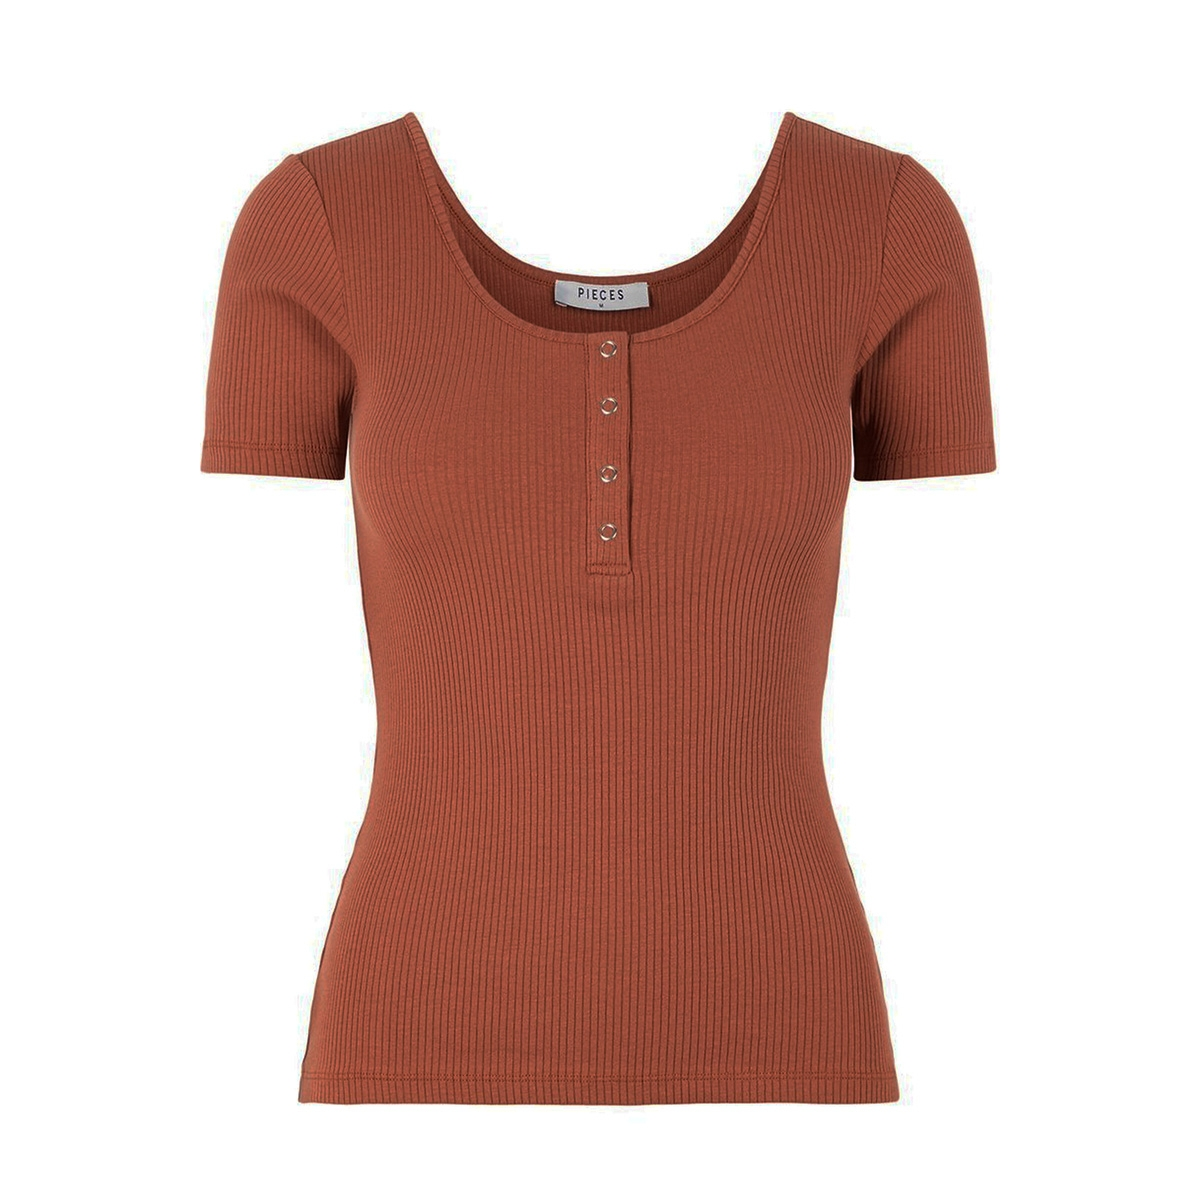 pckitte ss top noos bc 17101439 pieces t-shirt mocha bisque/cp